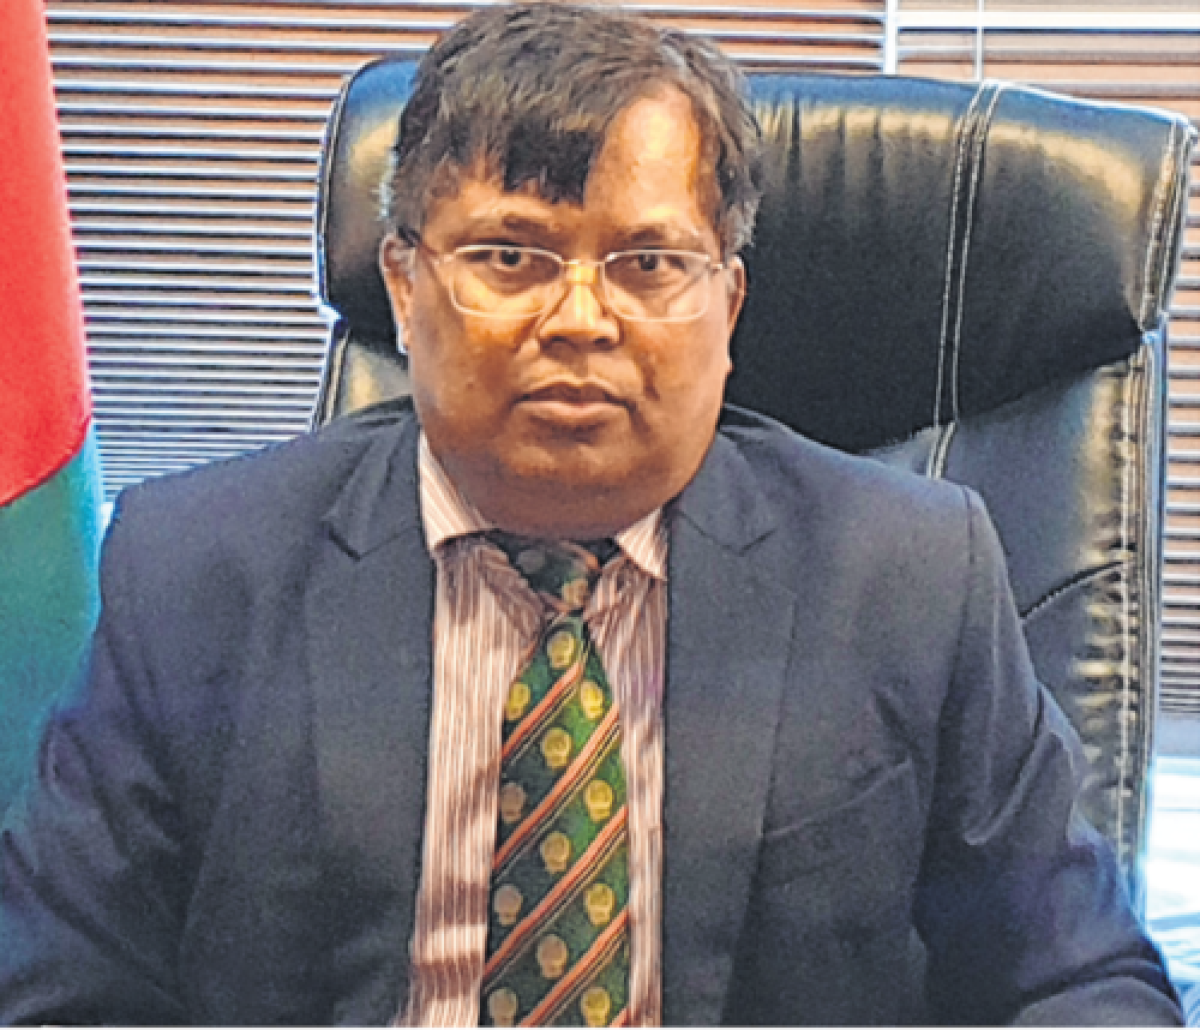 Mohammad Lutfor Rahman: With regards to trade, India is clearly the greater influence on Bangladesh